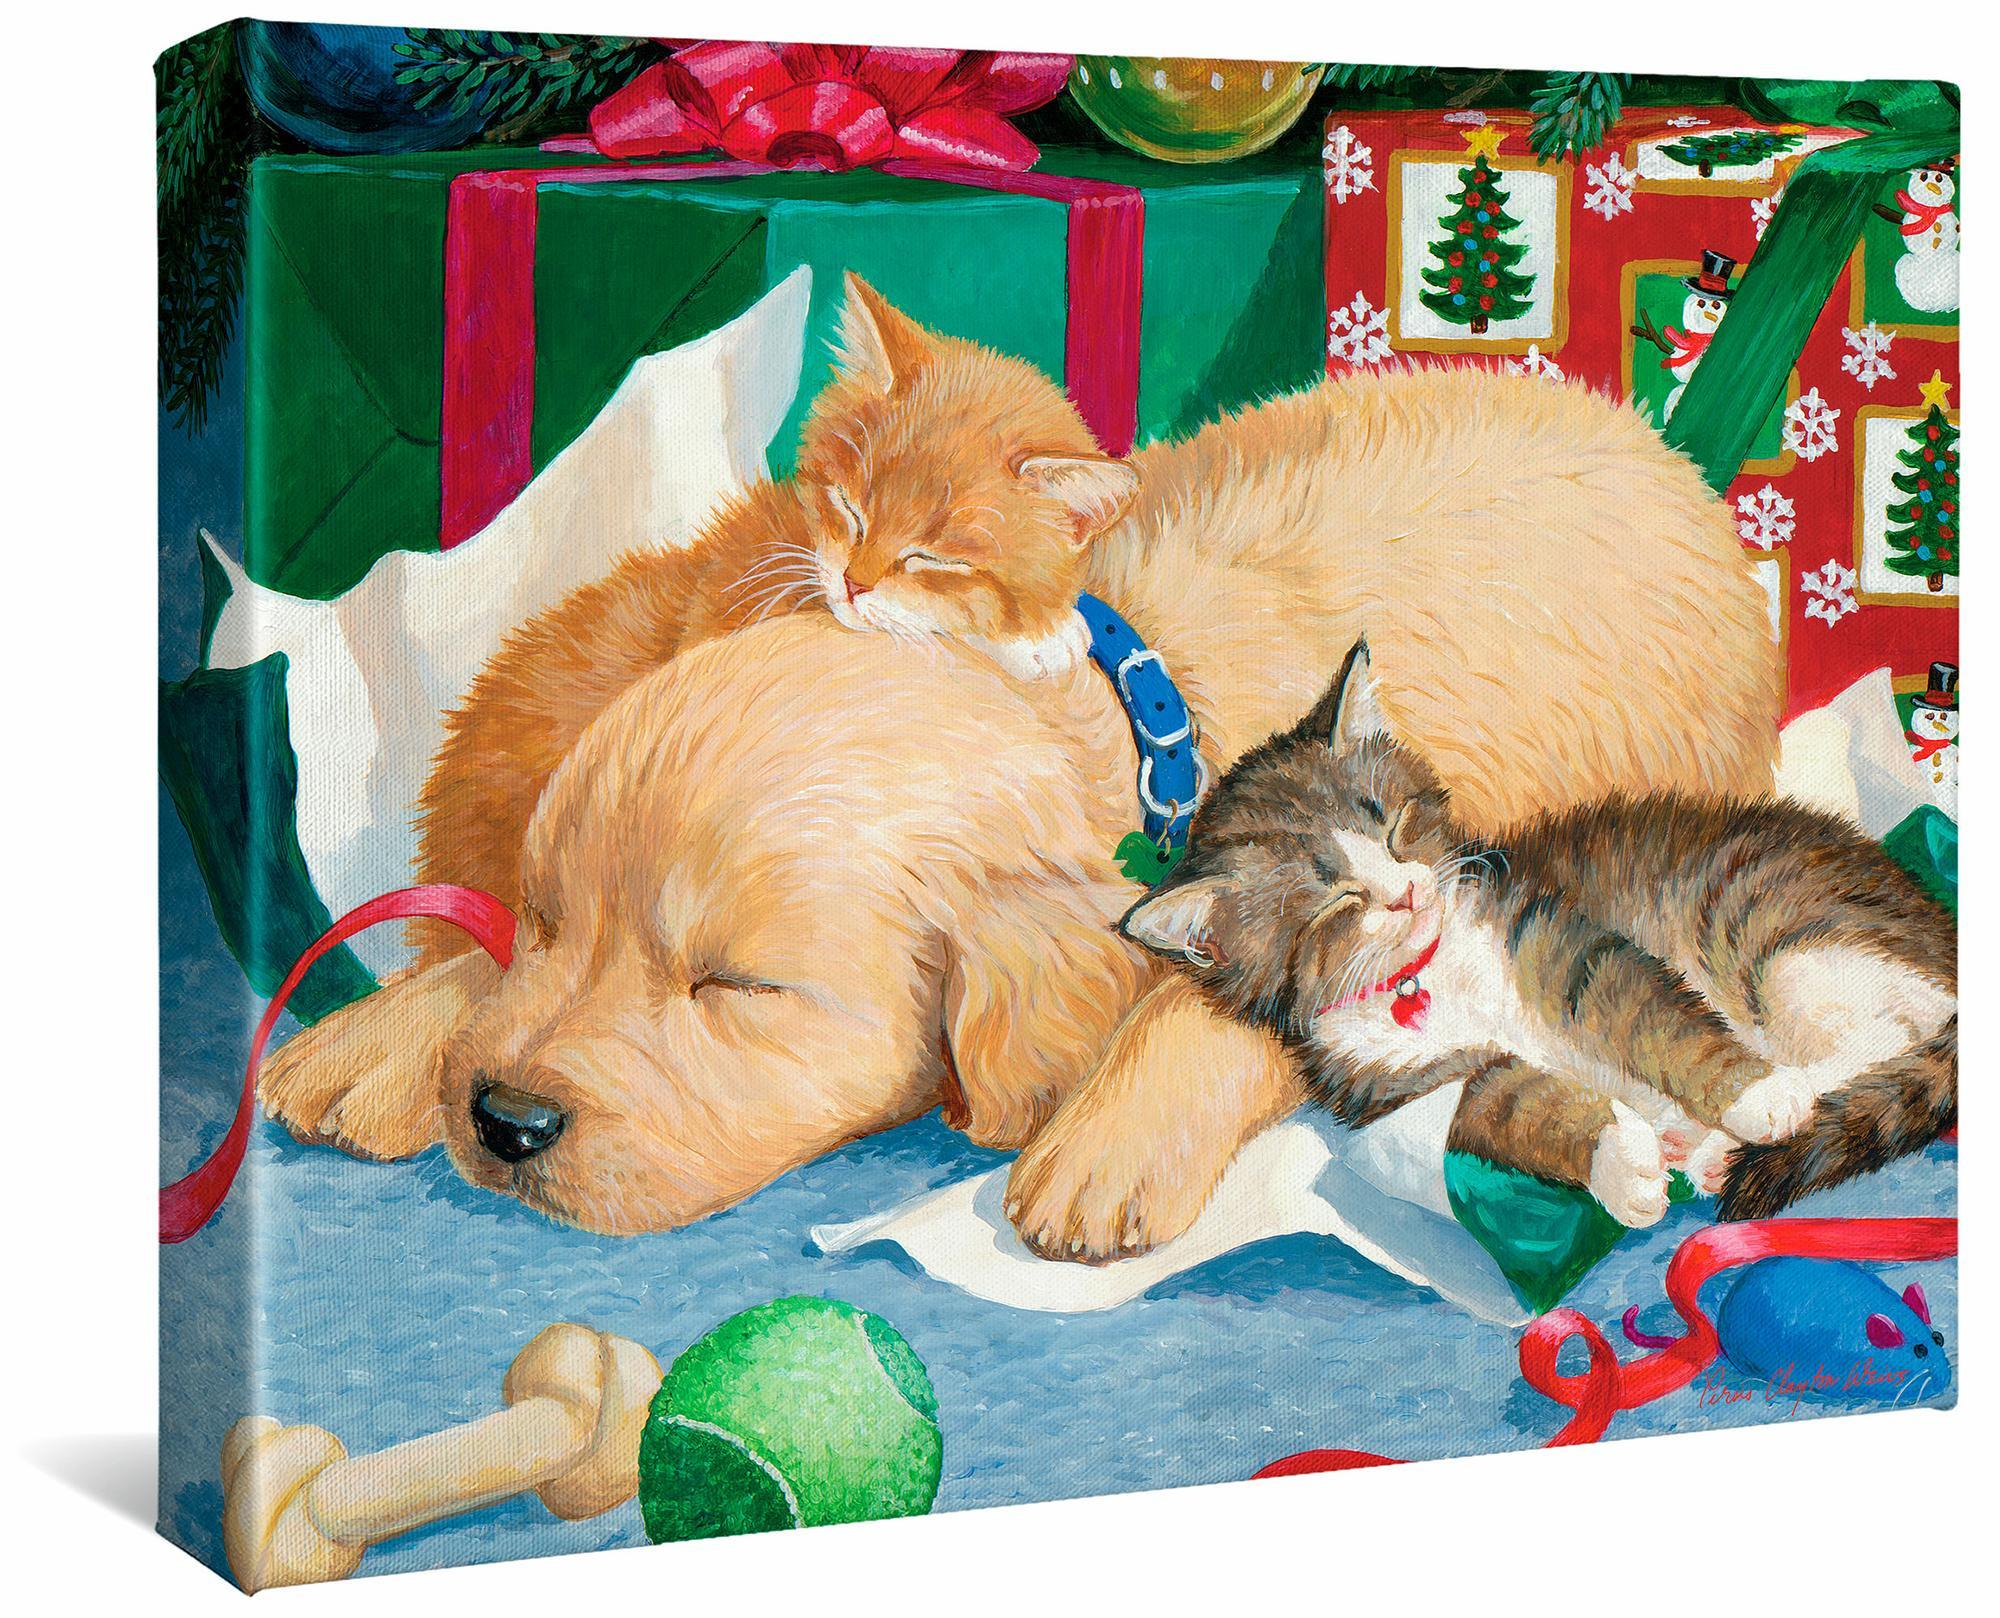 Too Much Fun-Puppy & Kittens Gallery Wrapped Canvas